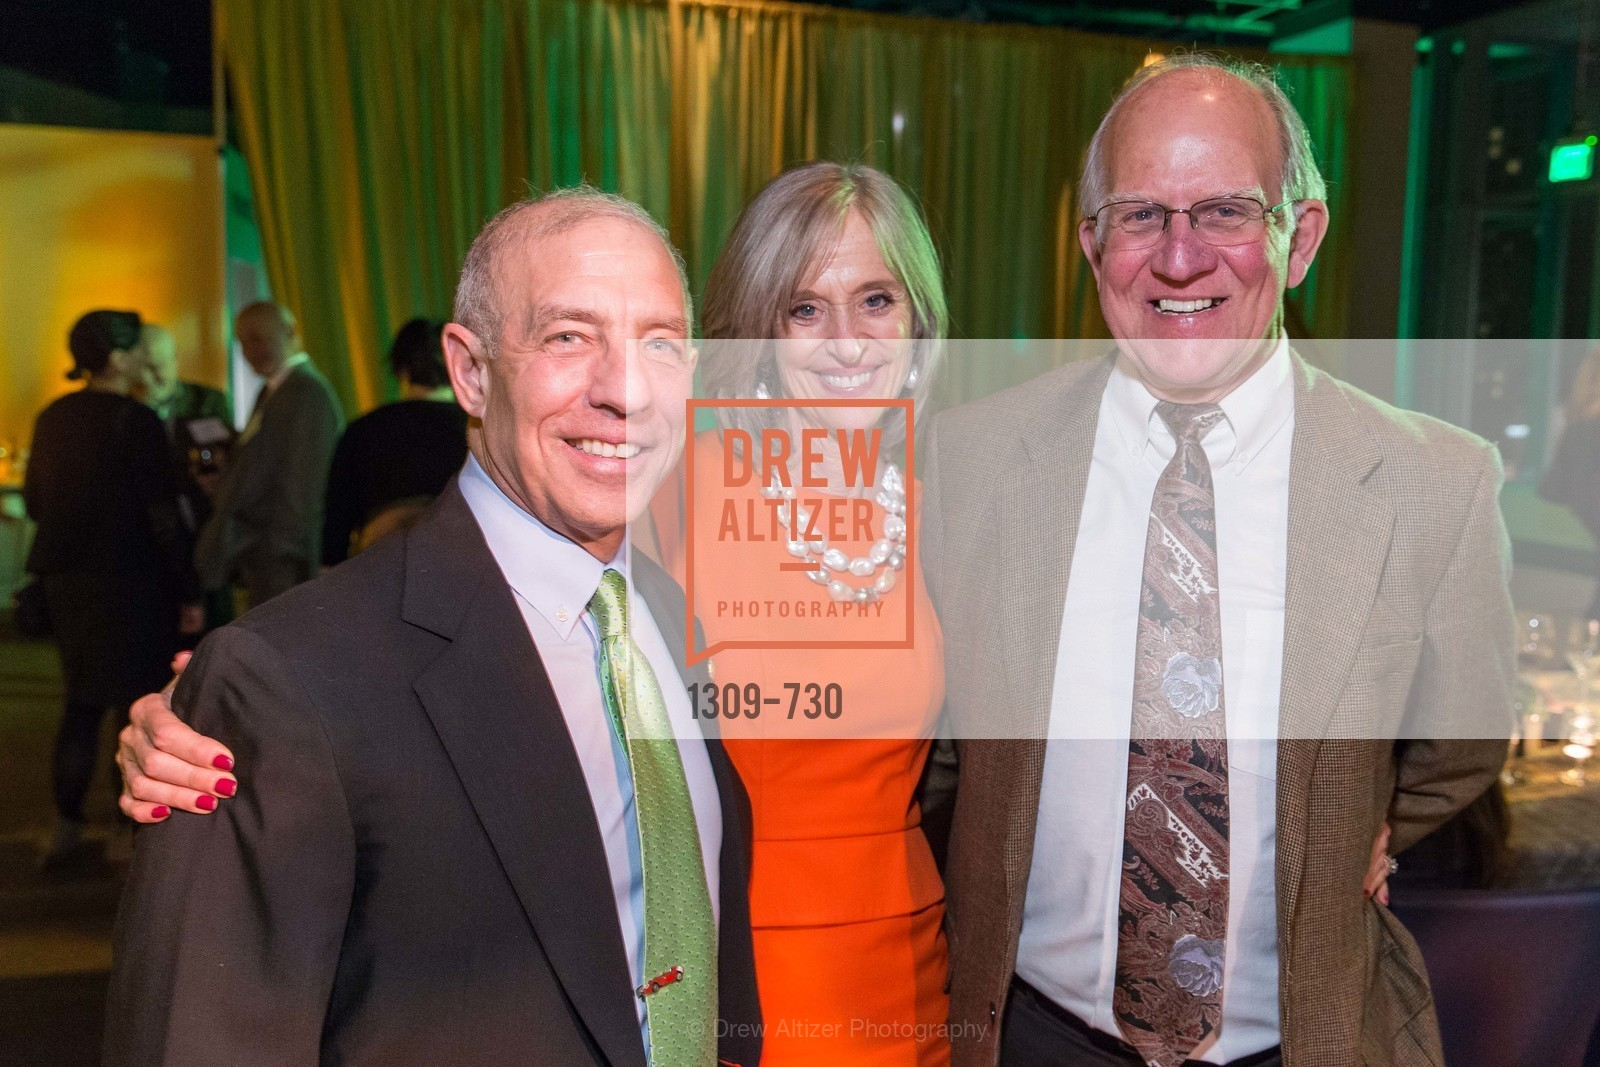 Jeff Frank, CJ Handeland, Ron Handeland, 2015 SIERRA CLUB Trail Blazers Ball, US, May 16th, 2015,Drew Altizer, Drew Altizer Photography, full-service agency, private events, San Francisco photographer, photographer california